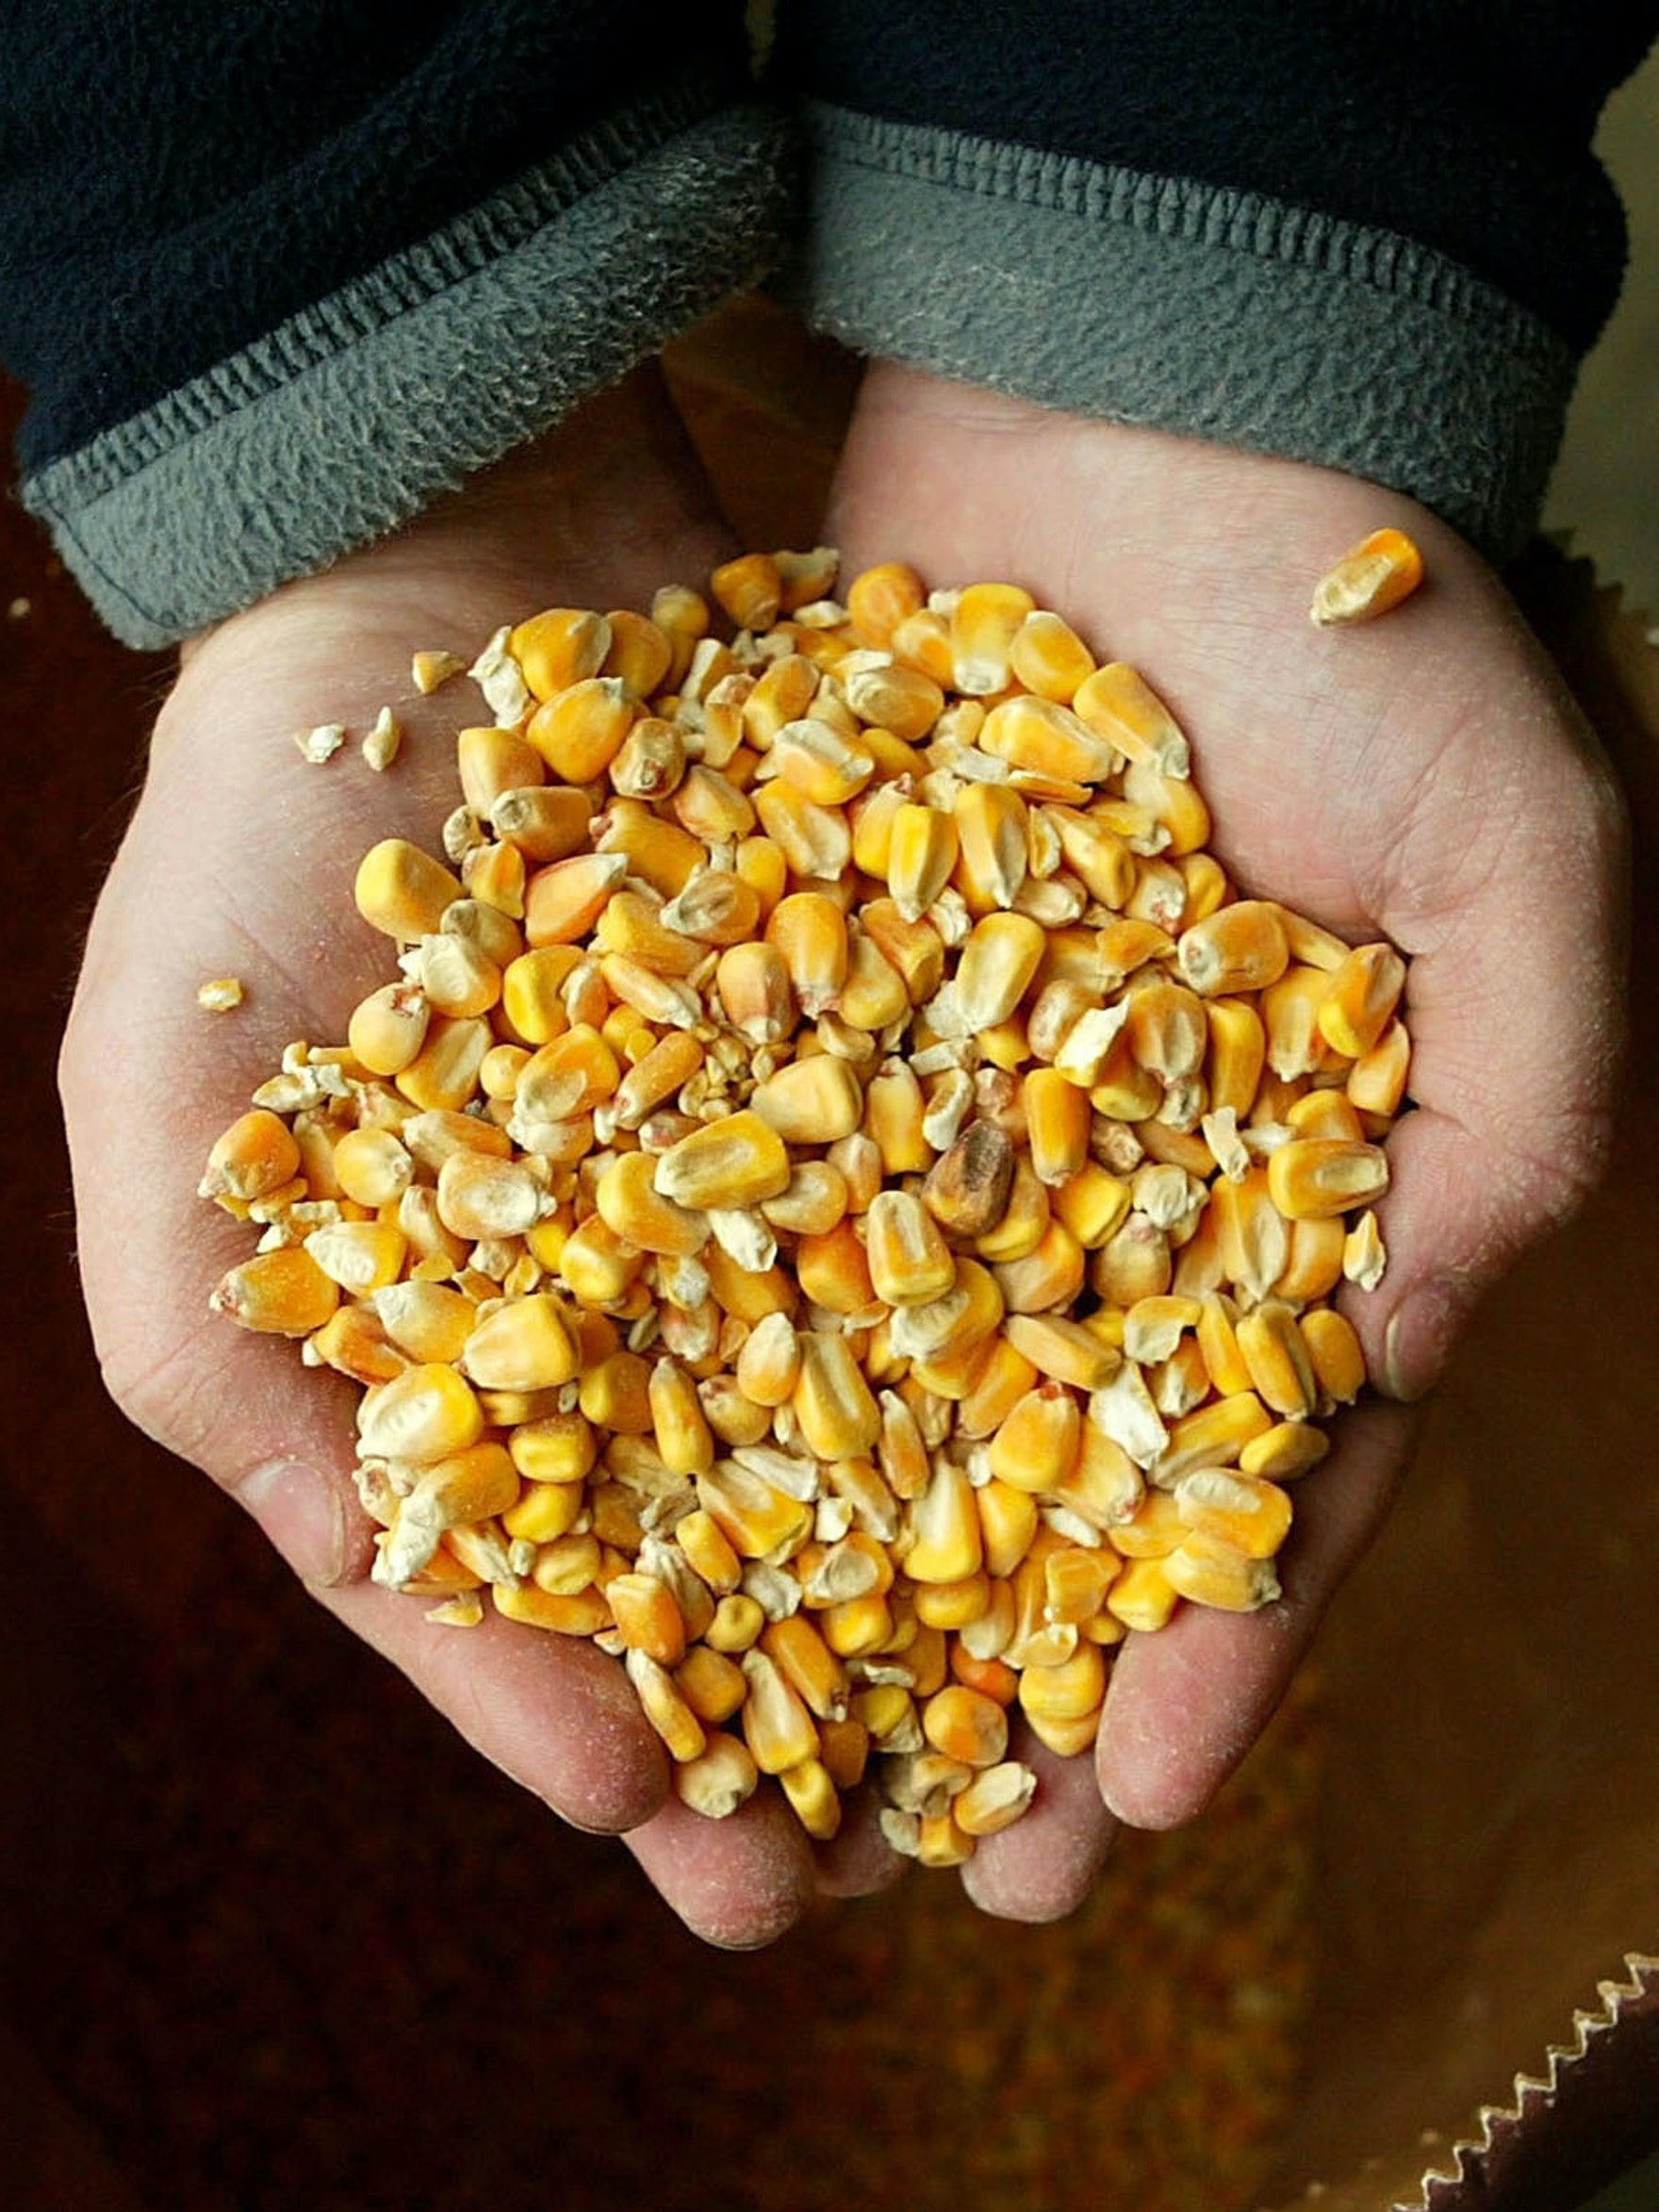 BISHOP'S STORTFORD, ENGLAND - MARCH 5 :  A handful of forage maize seed is seen on March 5, 2004 in Bishop's Stortford, England. British MPs from the Environmental Audit Committee have told the government that major new field tests should be done before any genetically modified crops are allowed to be grown commercially in Britain. (Photo by Scott Barbour/Getty Images) *** Local Caption ***